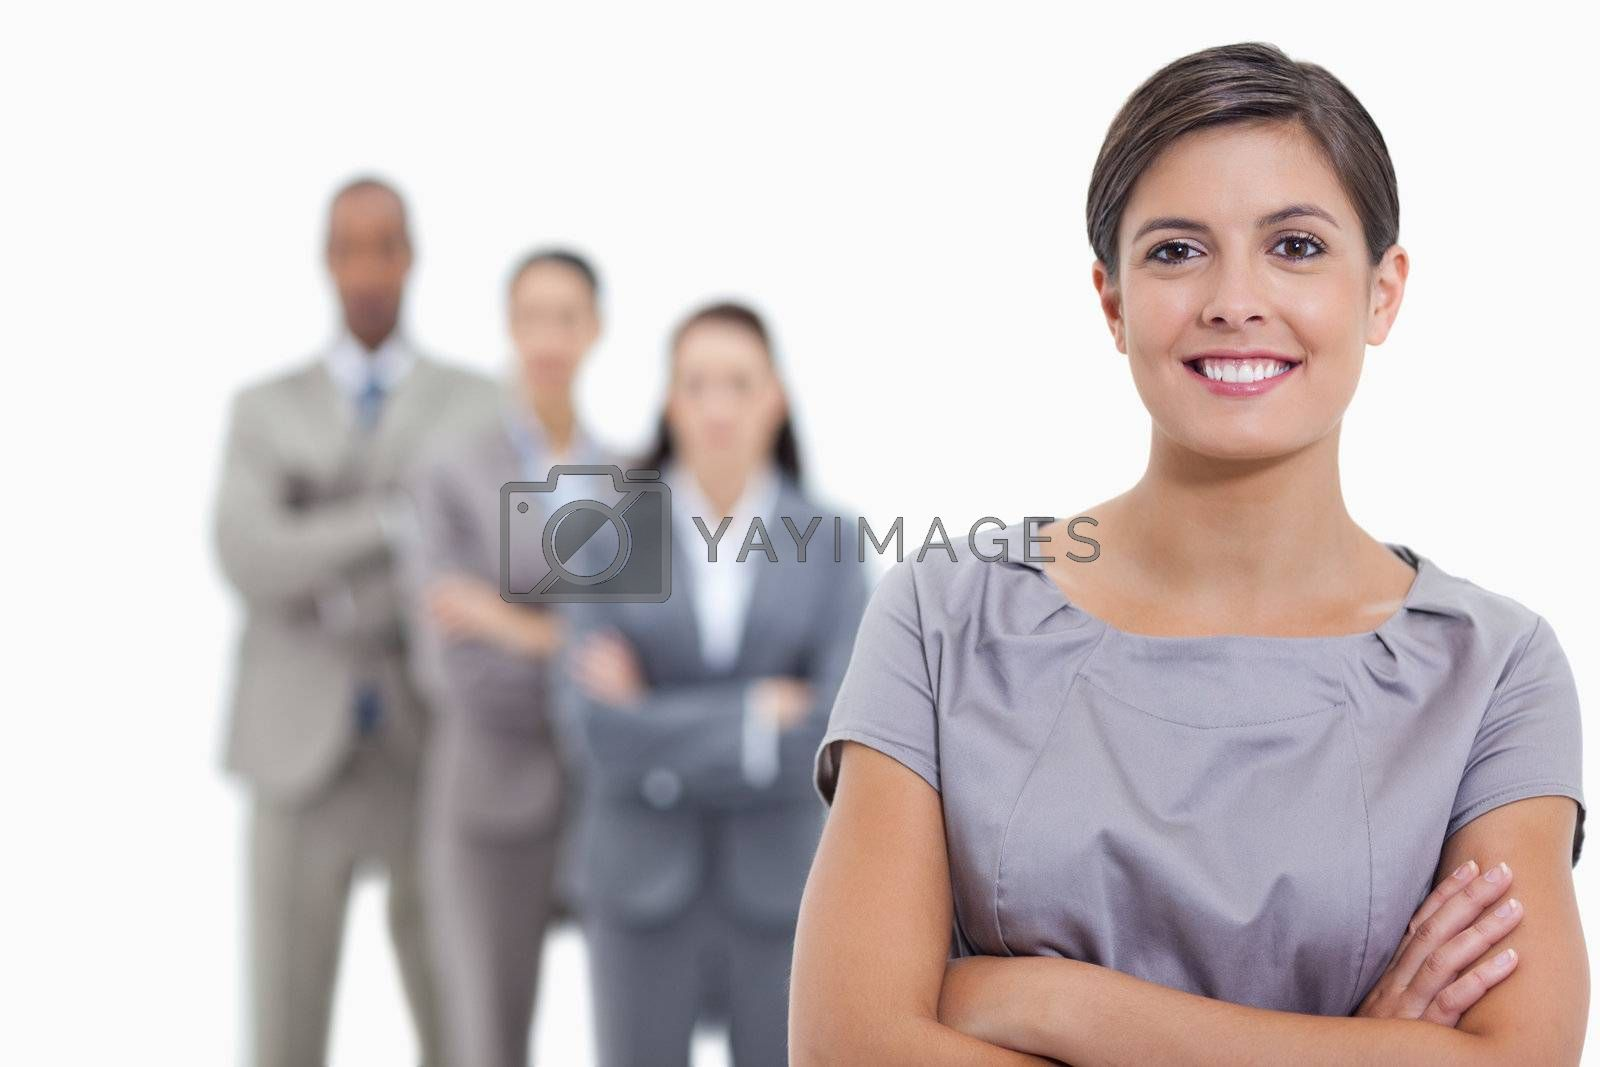 Close-up of a business team crossing their arms and standing behind each other with focus on the foreground woman who is smiling